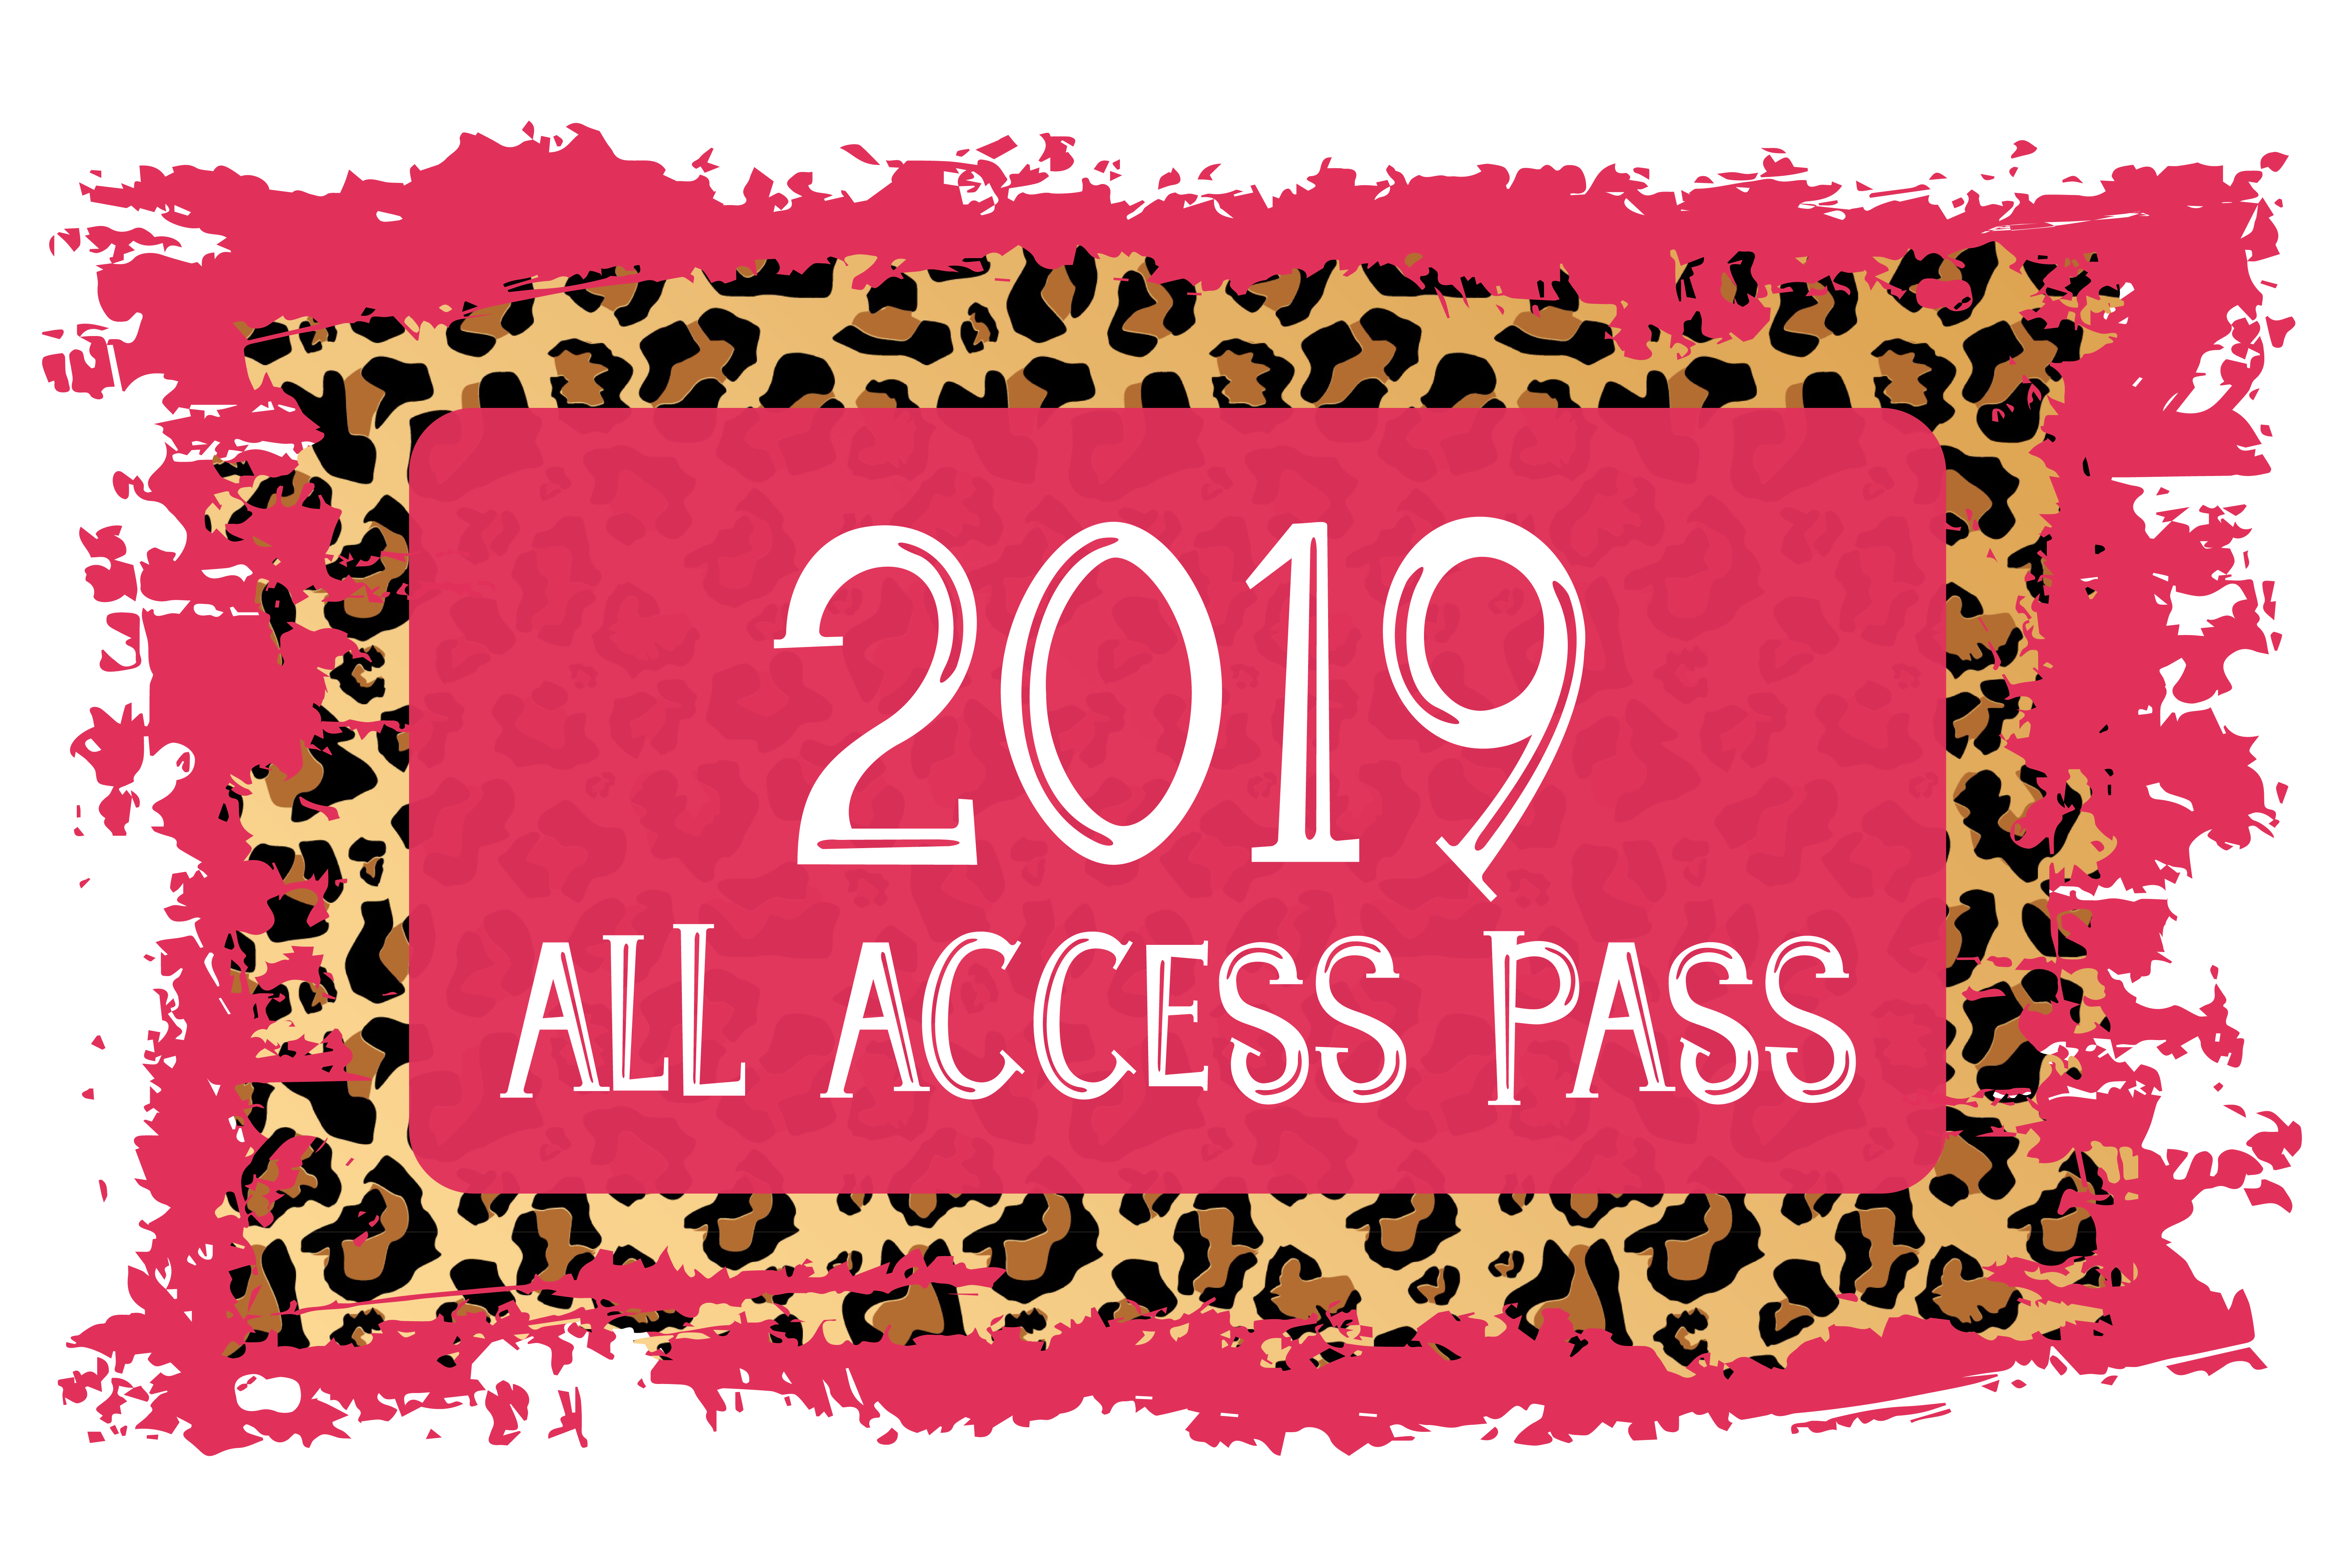 2019-all-access-pass-01.png